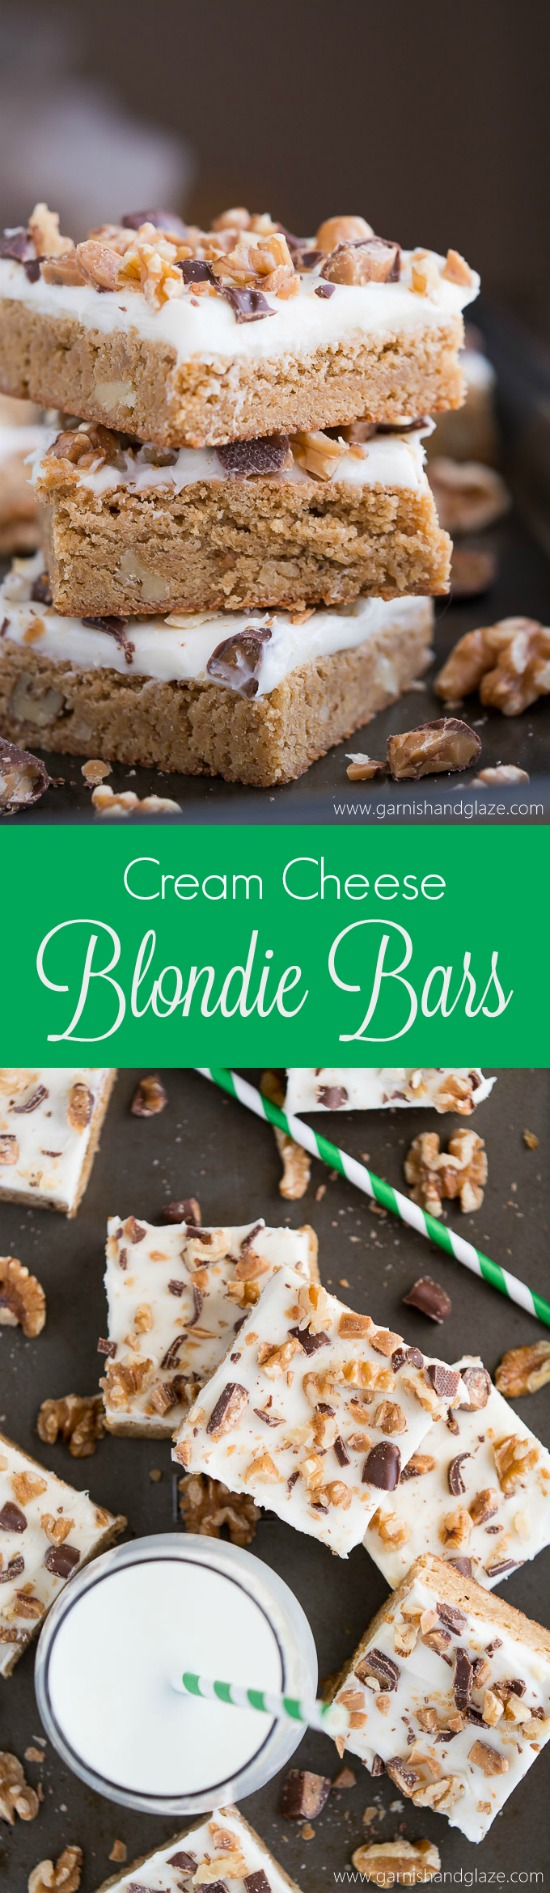 With a brown sugar brownie bottom, cream cheese frosting, and walnuts & Heath on top, Cream Cheese Blondie Bars are nothing short of addicting!